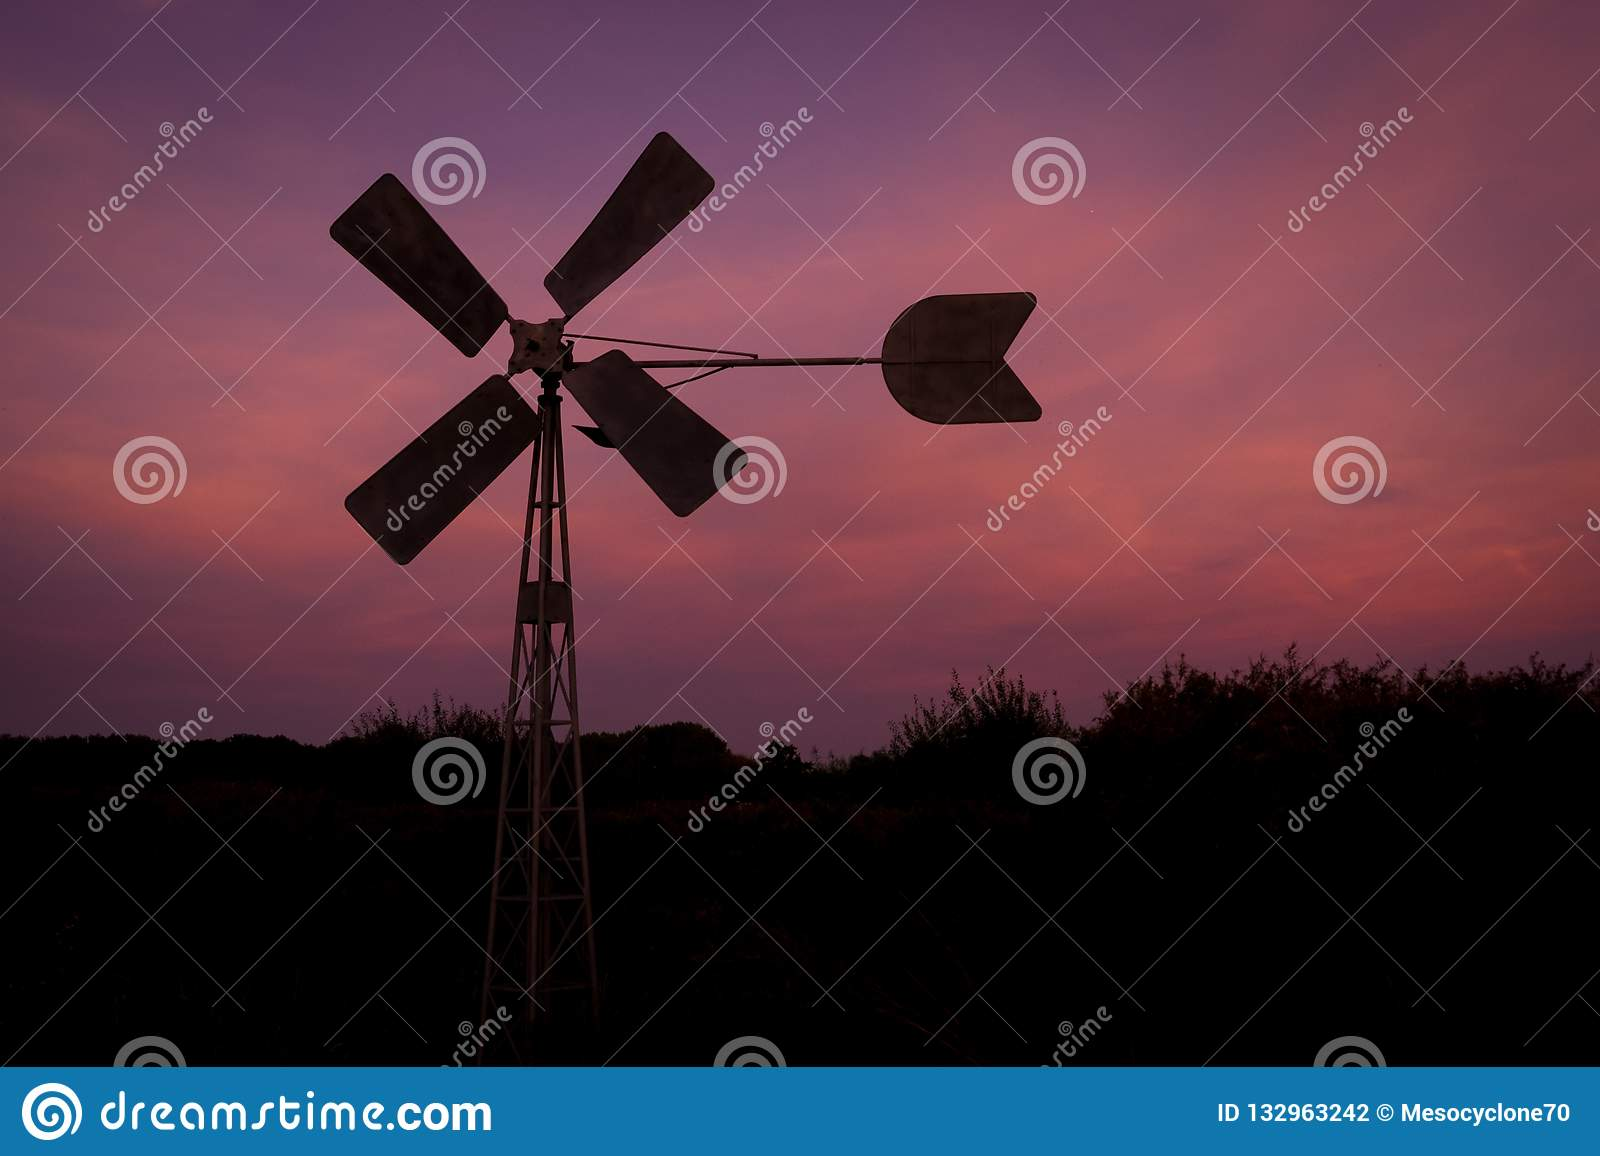 Silhouette of a windmill against a purple evening sky near Gouda, Holland